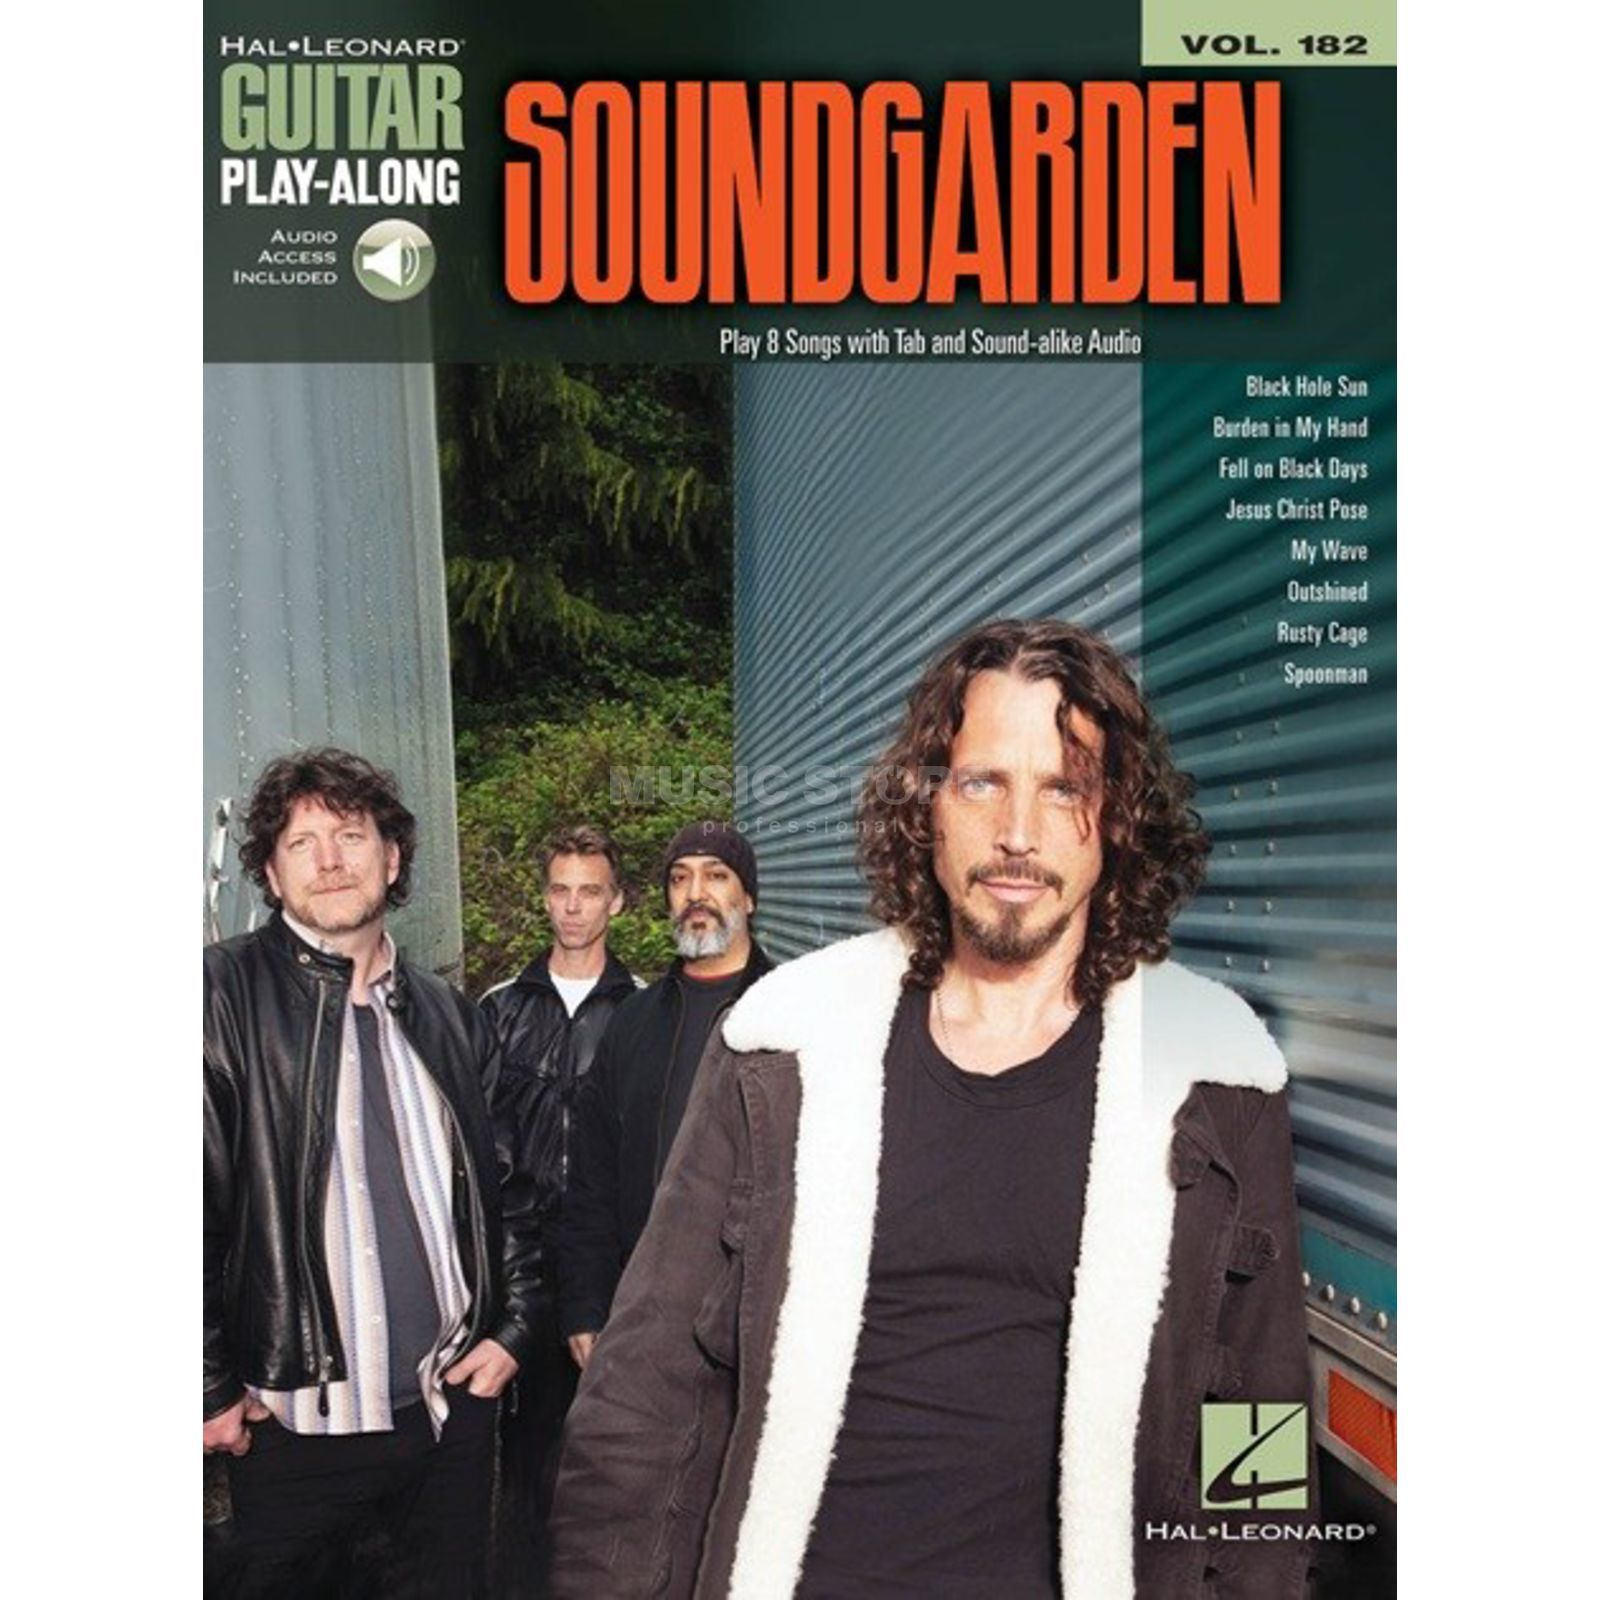 Hal Leonard Guitar Play-Along: Soundgarden Vol. 182, TAB and Download Produktbillede